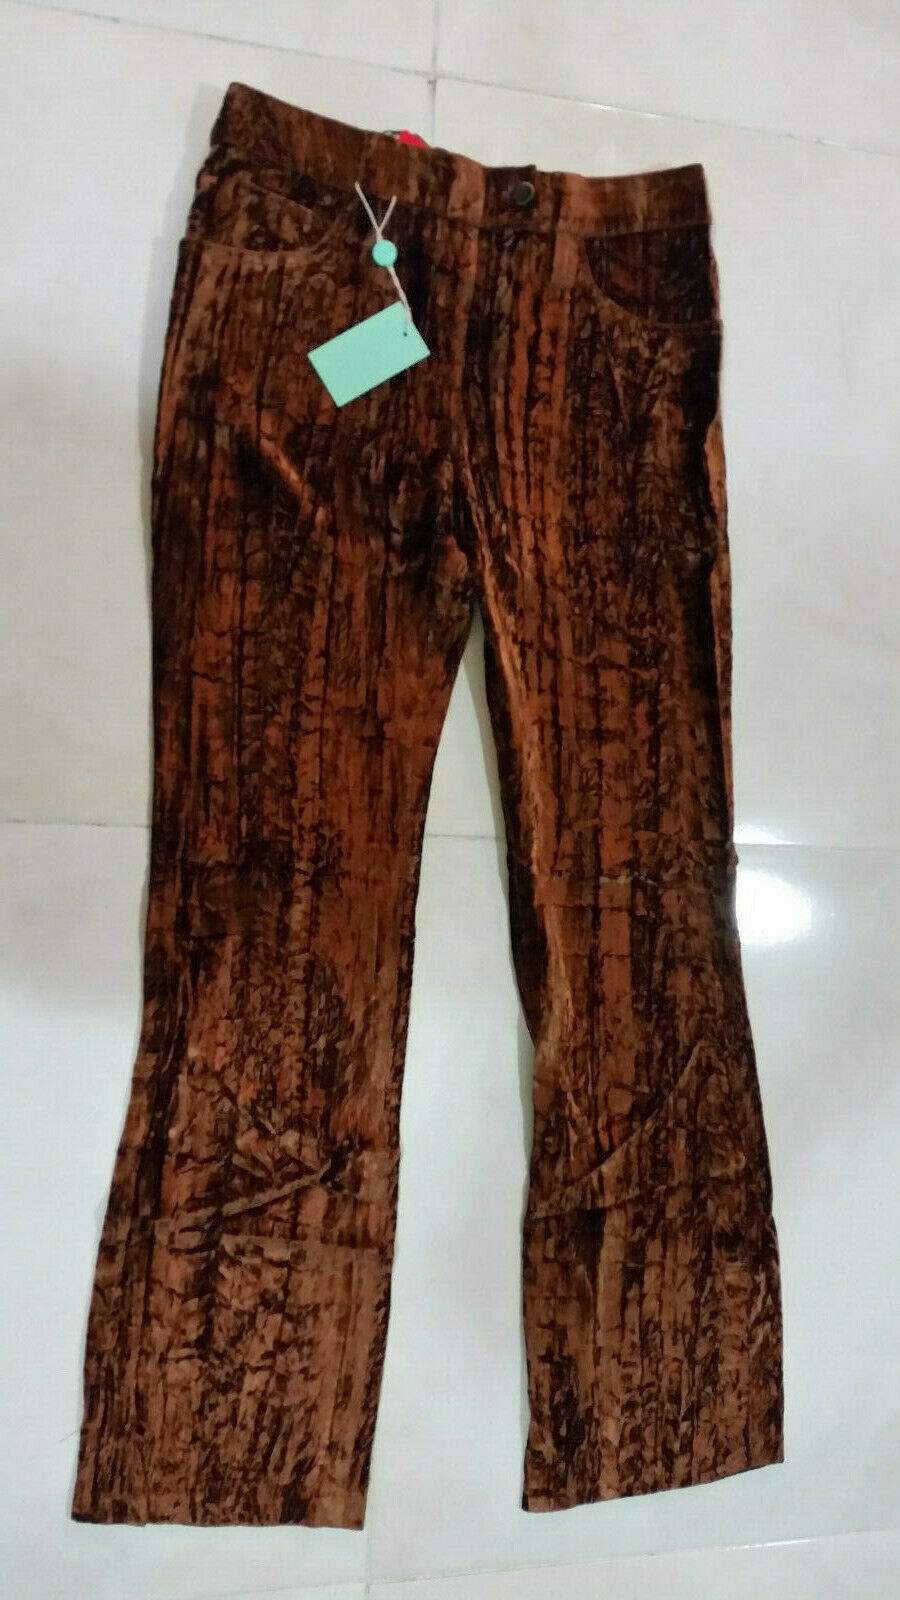 NEW  ELEONORA ITALY SENZA RICAMO WOMEN PANTS 100% POLYESTER COLOR BROWN SIZE 32